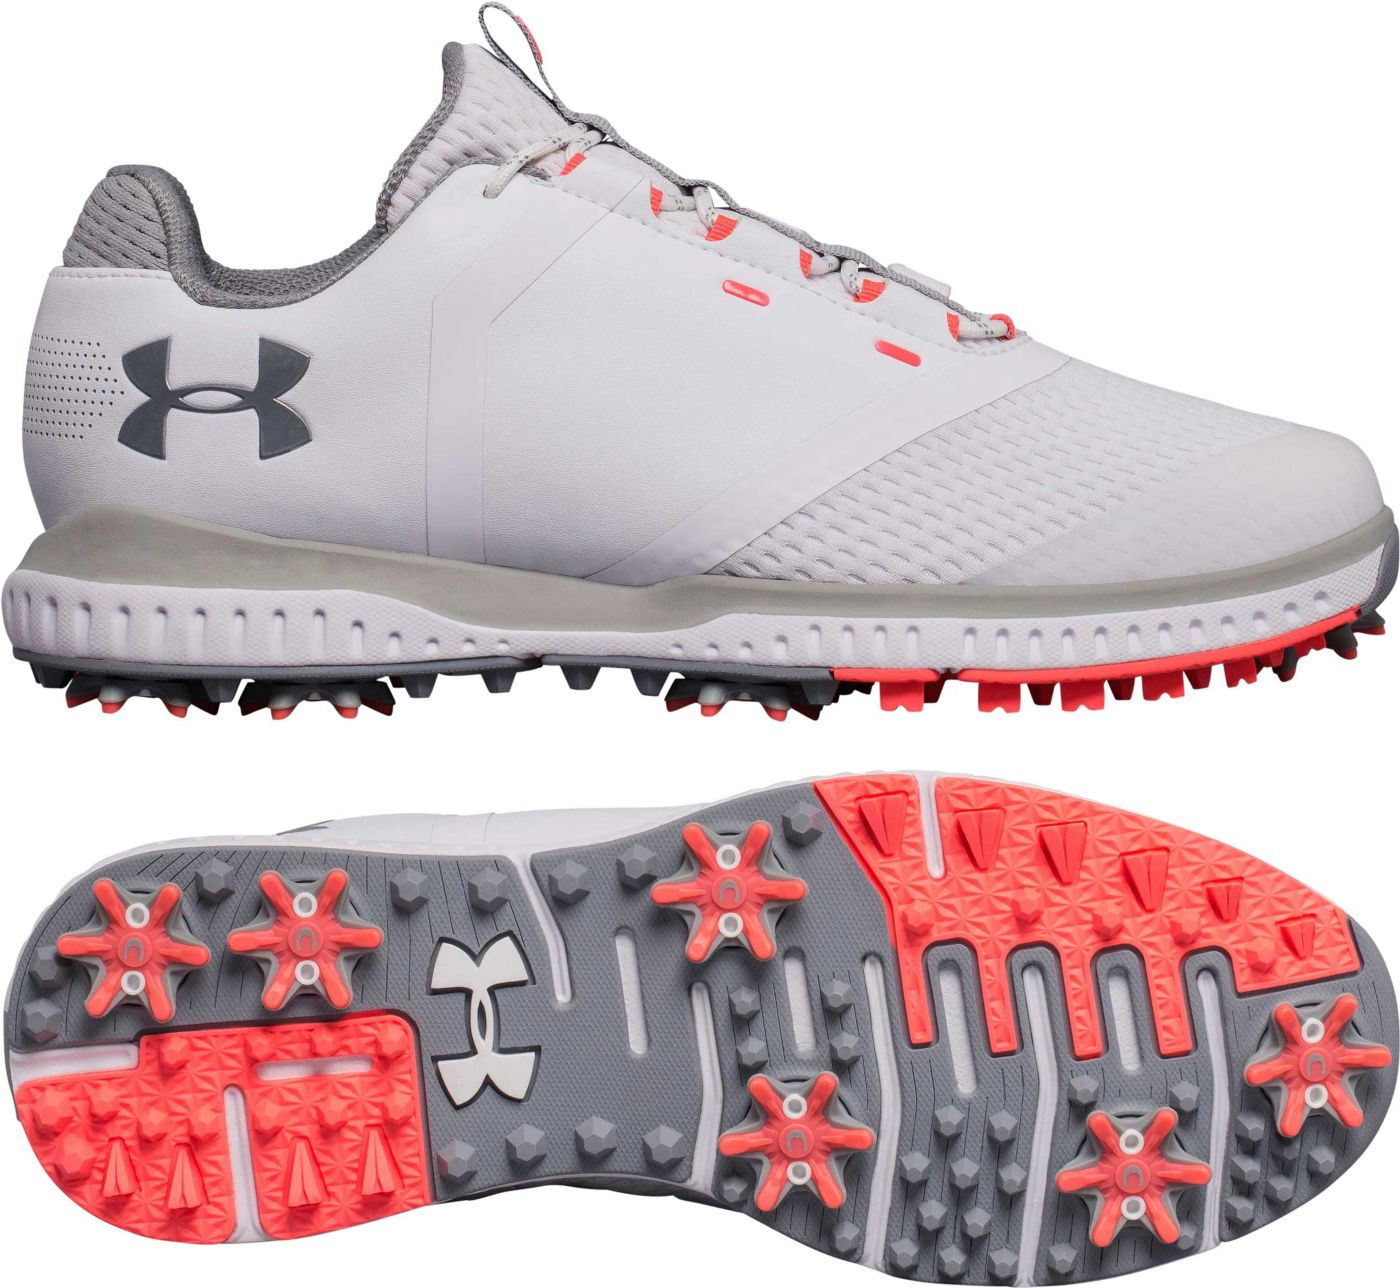 Under Armour Women's Fade RST Shoes